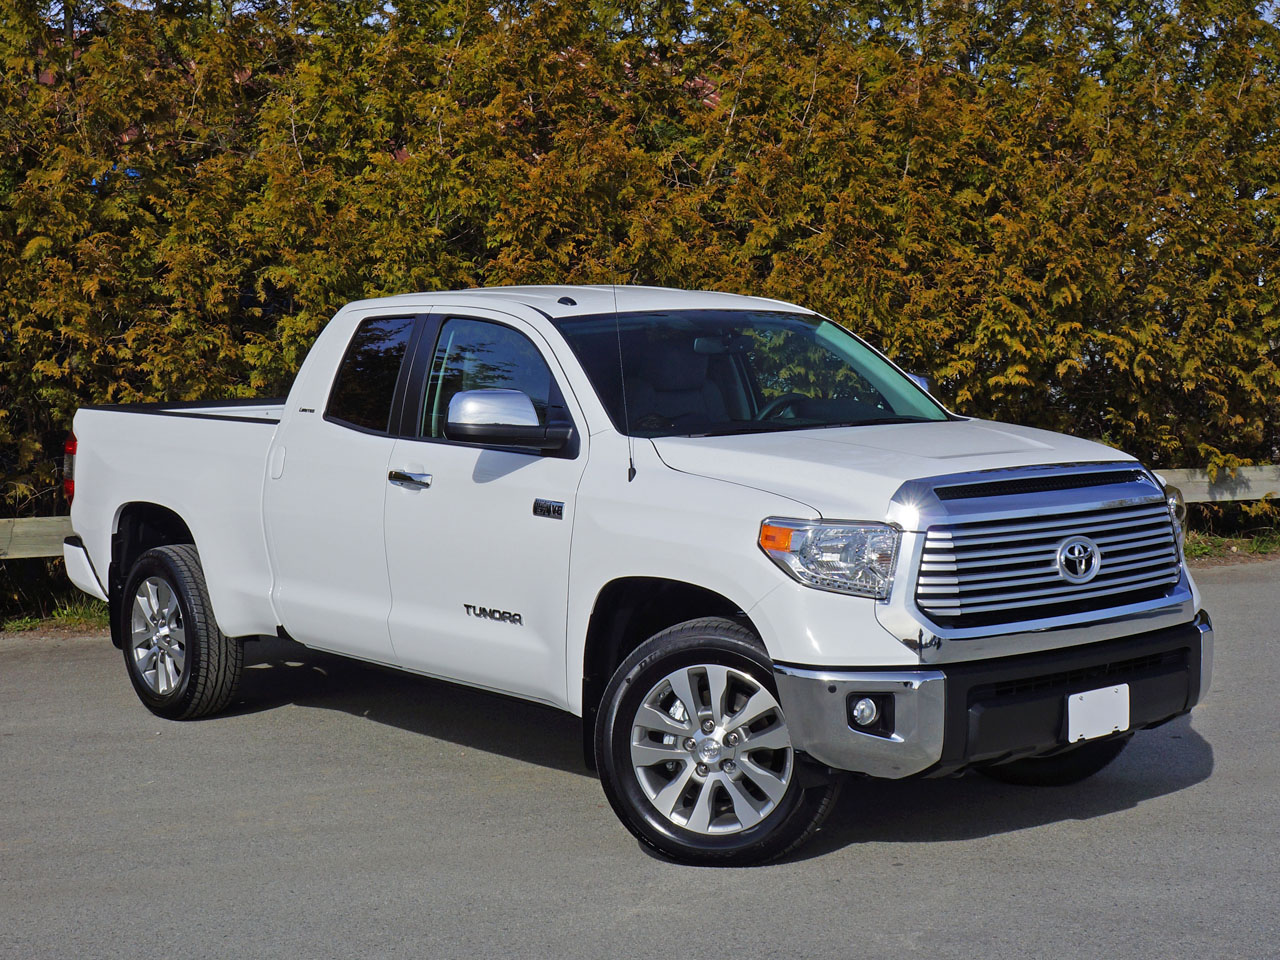 2015 toyota tundra double cab 5 7 limited tech 4x4 road test review carcostcanada. Black Bedroom Furniture Sets. Home Design Ideas